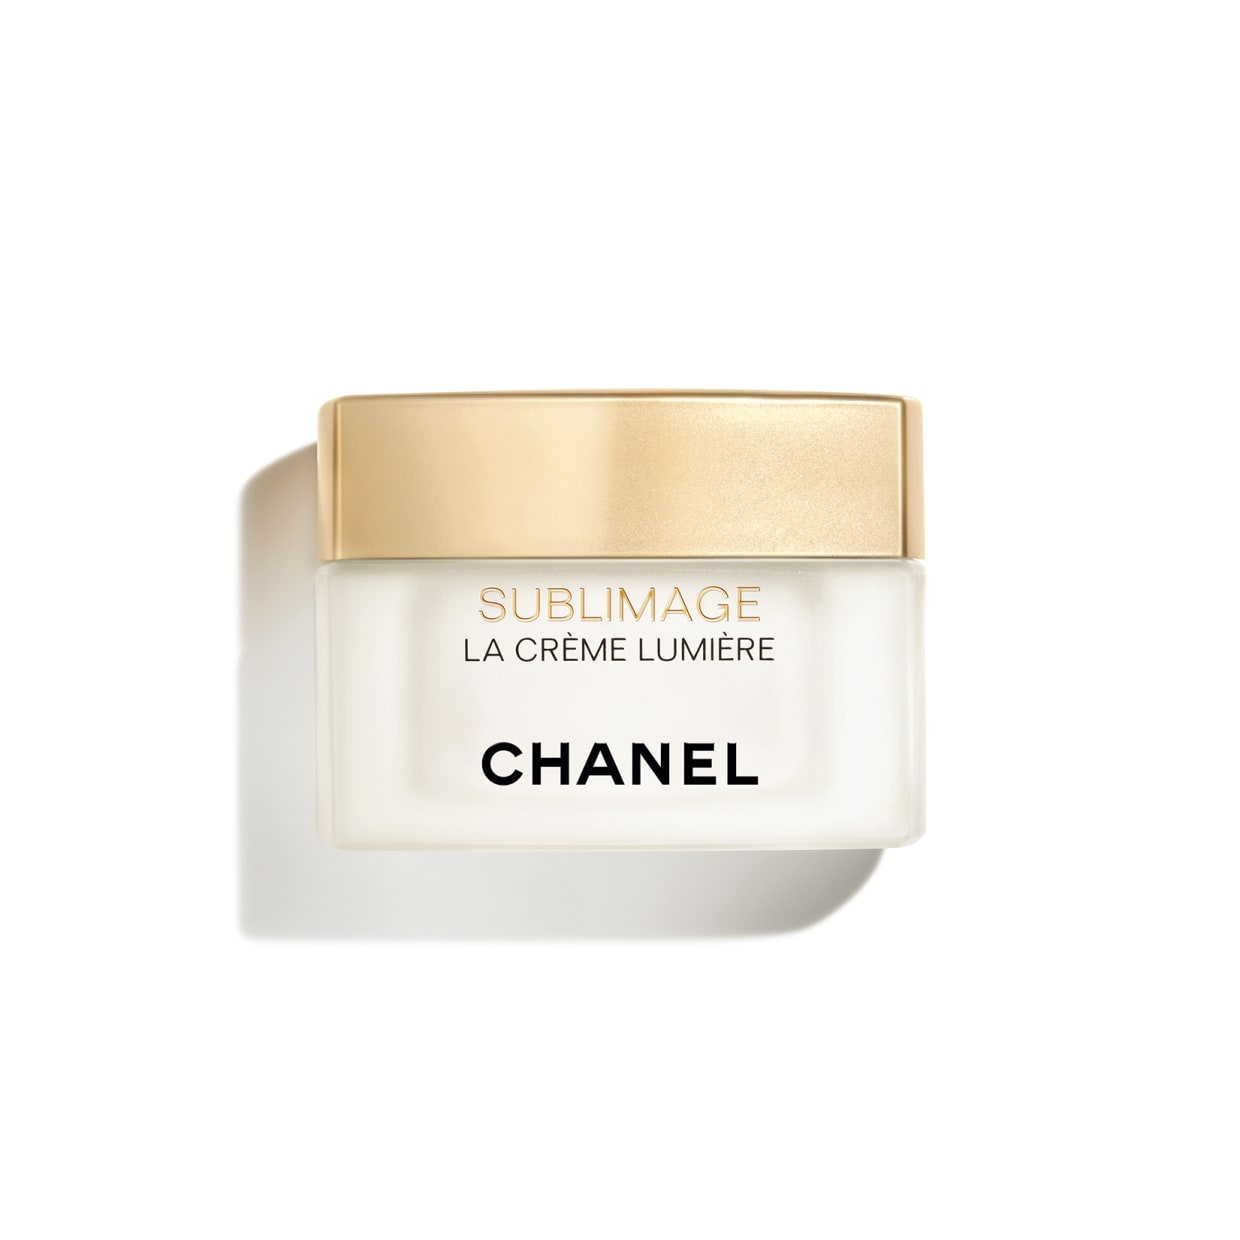 Chanel sublimage la crème lumière Ultimate Regeneration and Brightening Cream 50g